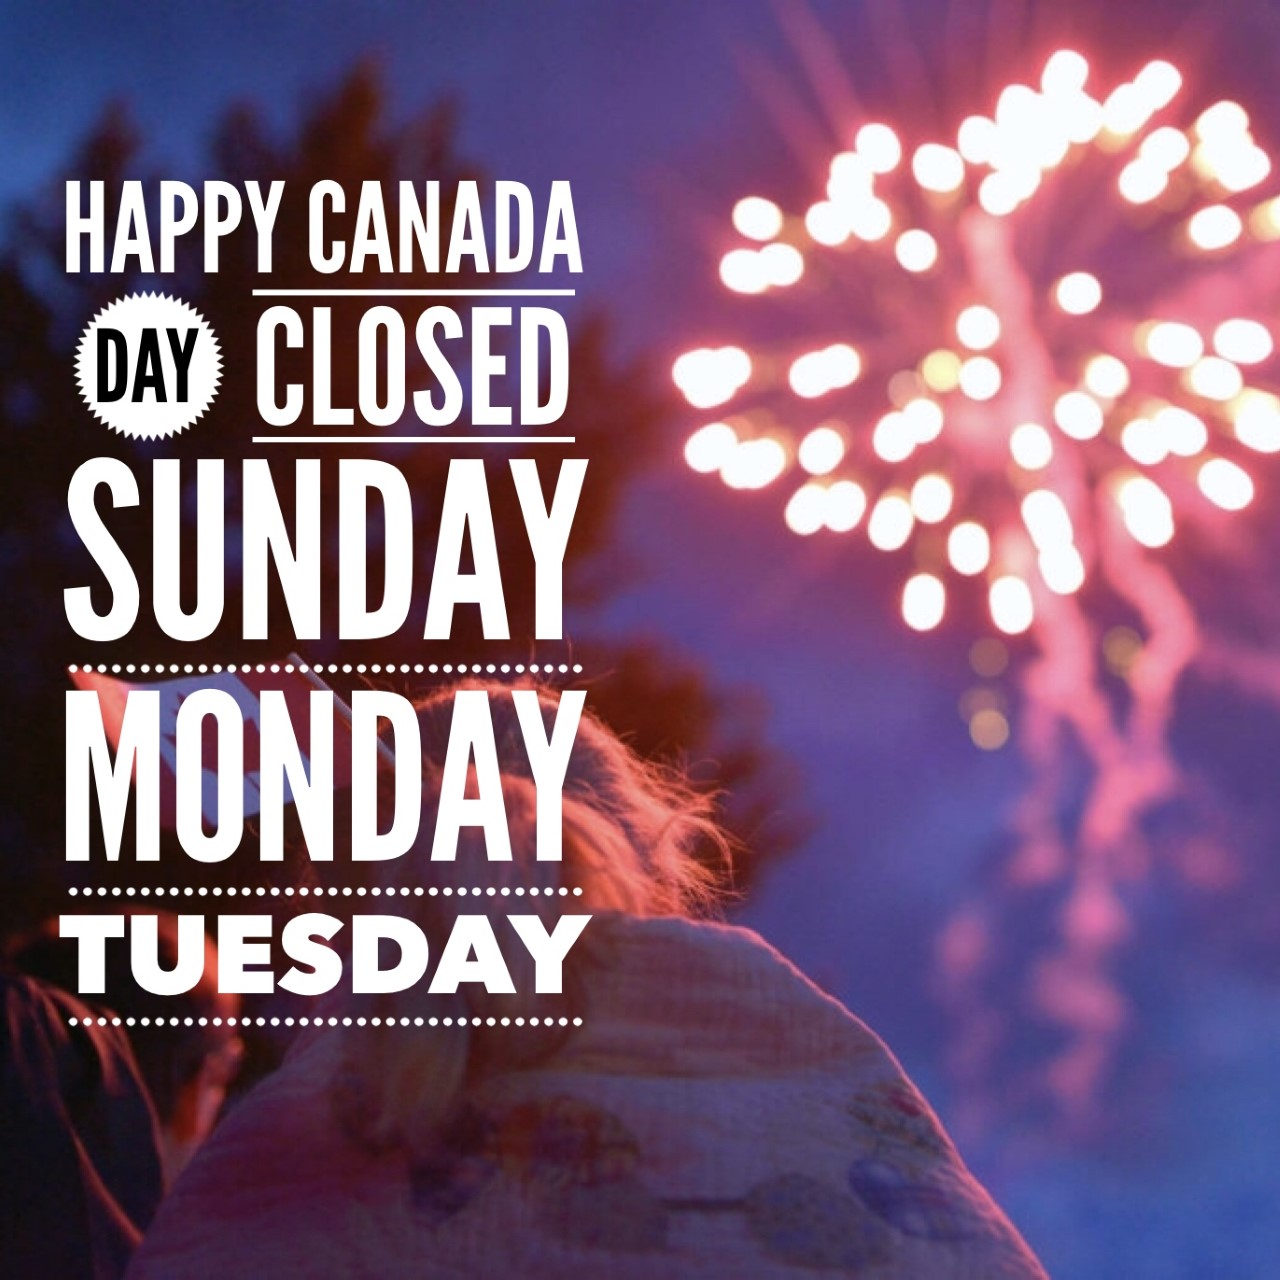 HAPPY CANADA DAY Long Weekend! - We will be closed Sunday through Tuesday for the long weekend! See you Wednesday morning at 10am. We hope you enjoy all of the festivities this coming weekend.